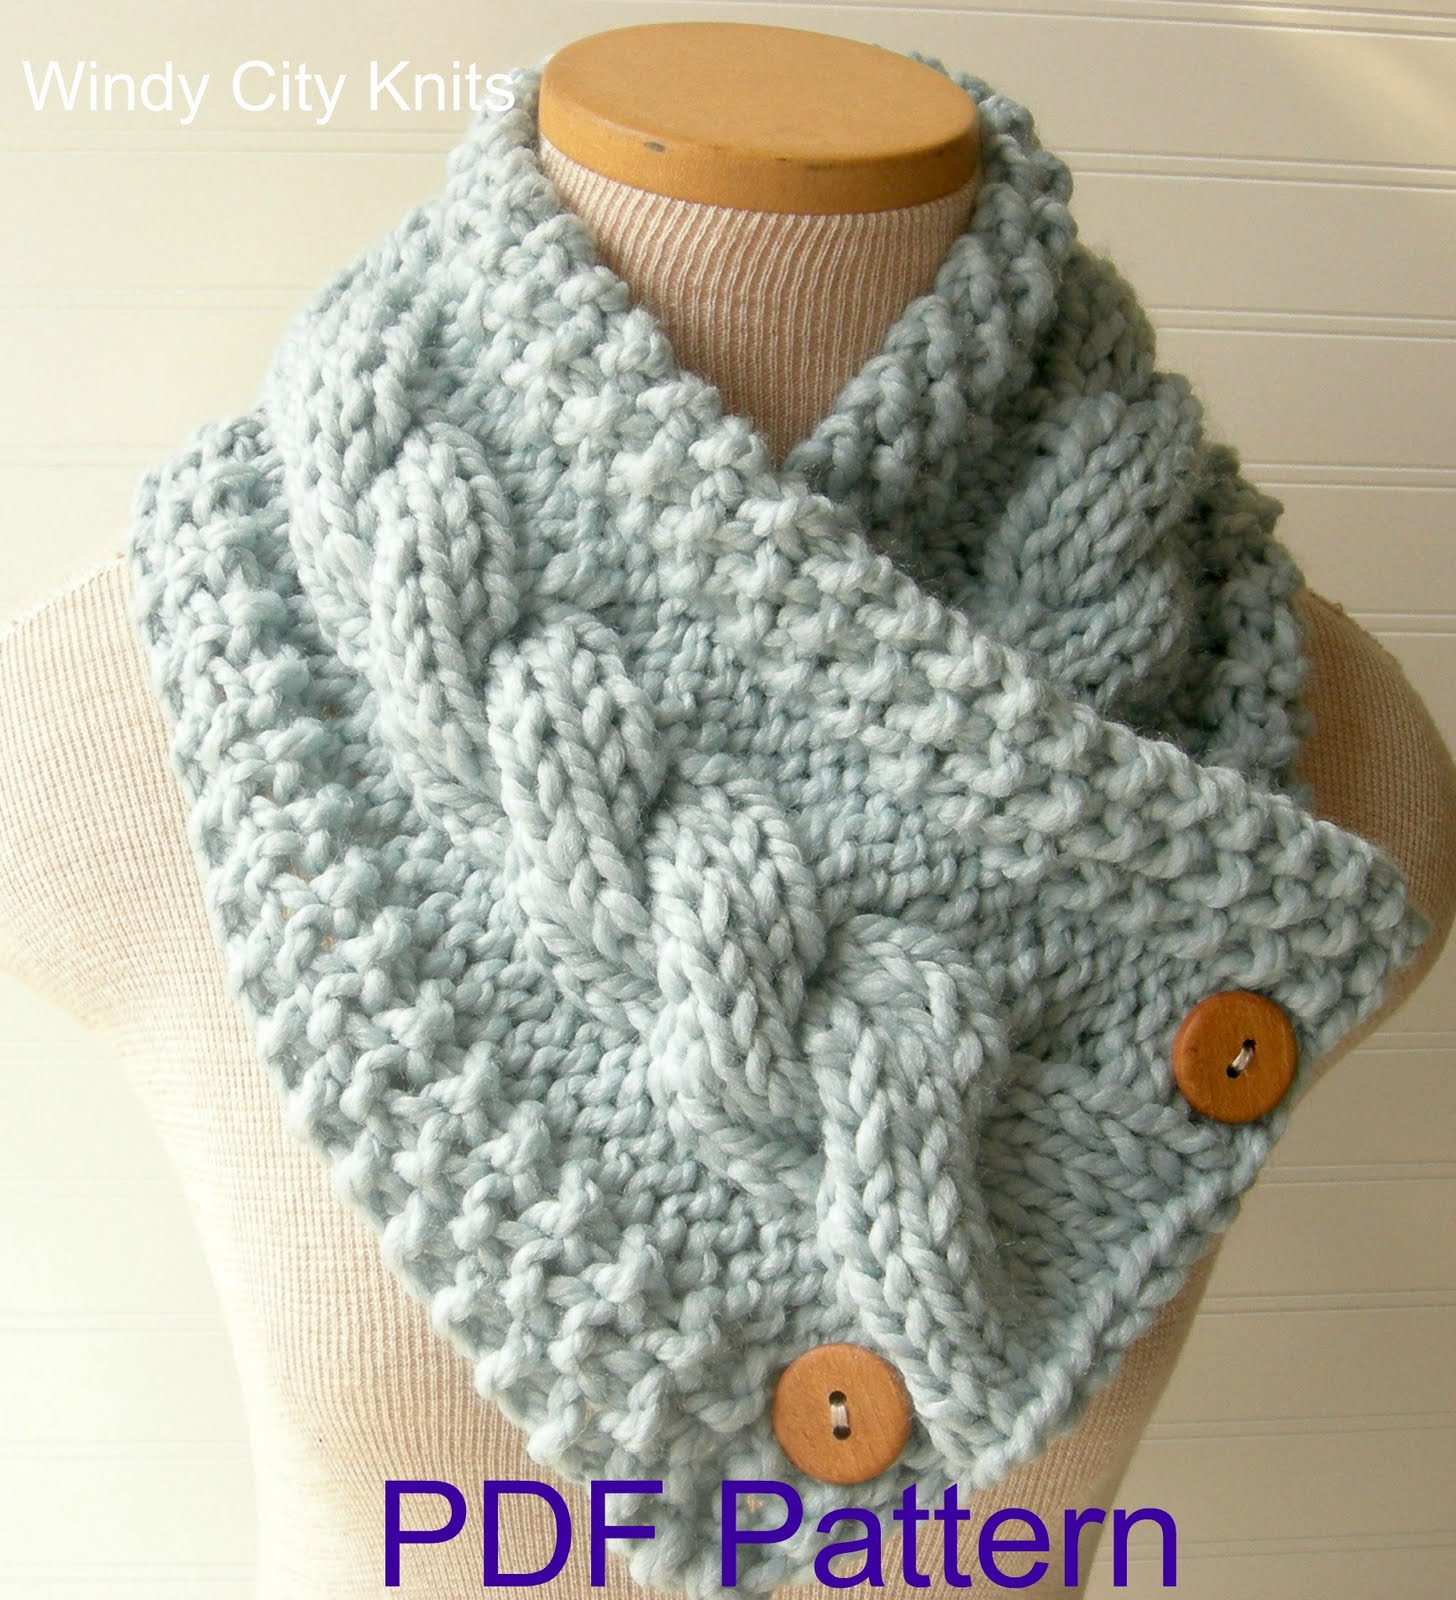 Cable Scarf Knitting Pattern : WindyCityKnits: Knit Cable Cowl Scarf Pattern Pdf